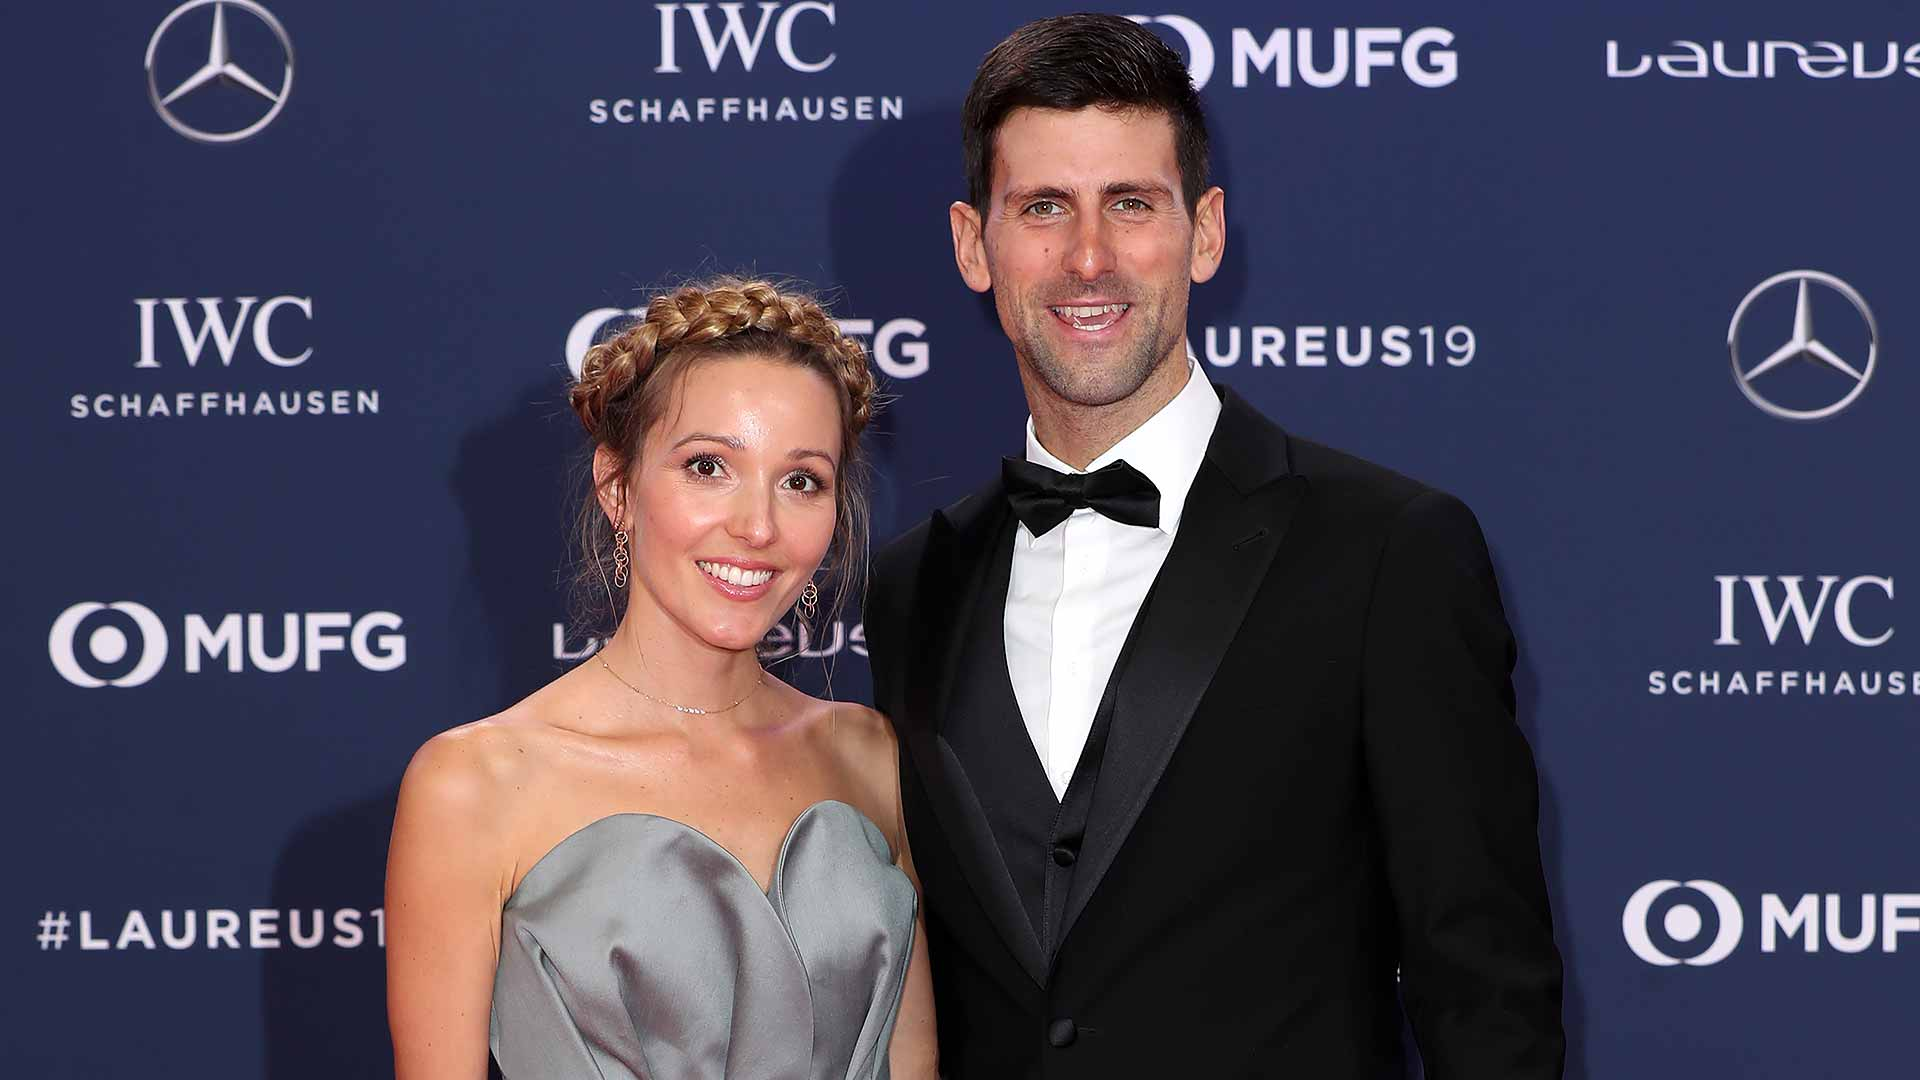 Novak Djokovic Discusses His Wife's Crucial Role In His Revival 2019 | ATP Tour | Tennis